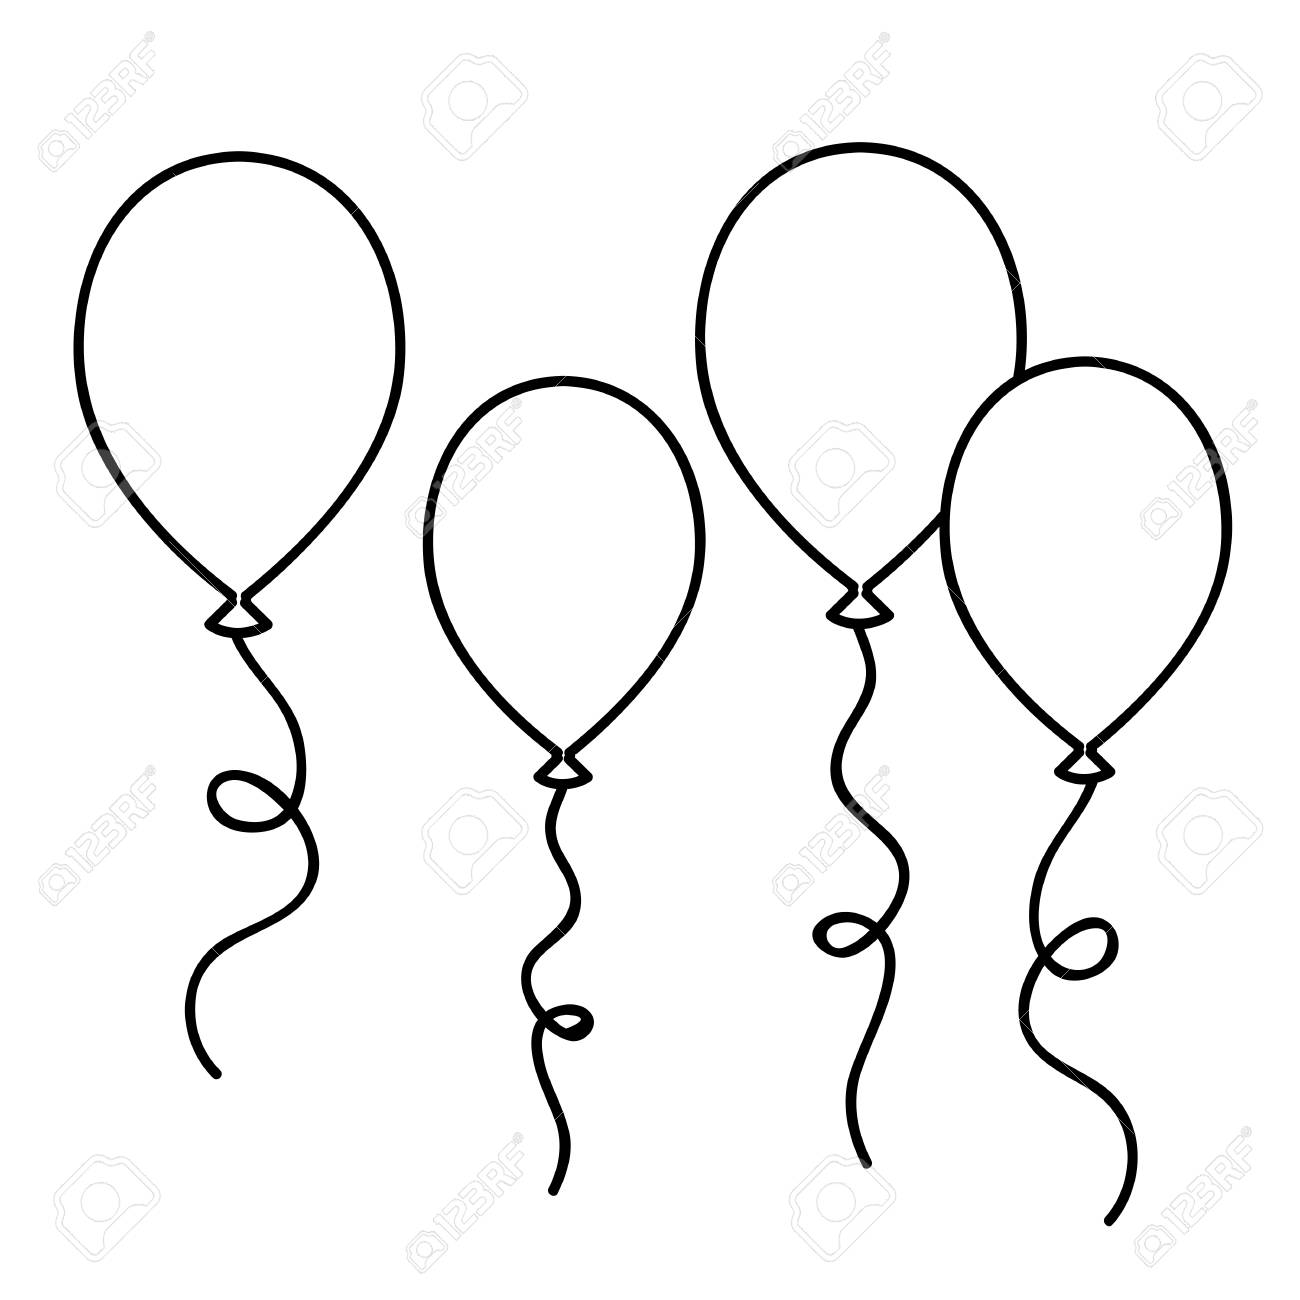 Balloons Simple Drawing Outline For Coloring Book Vector ...